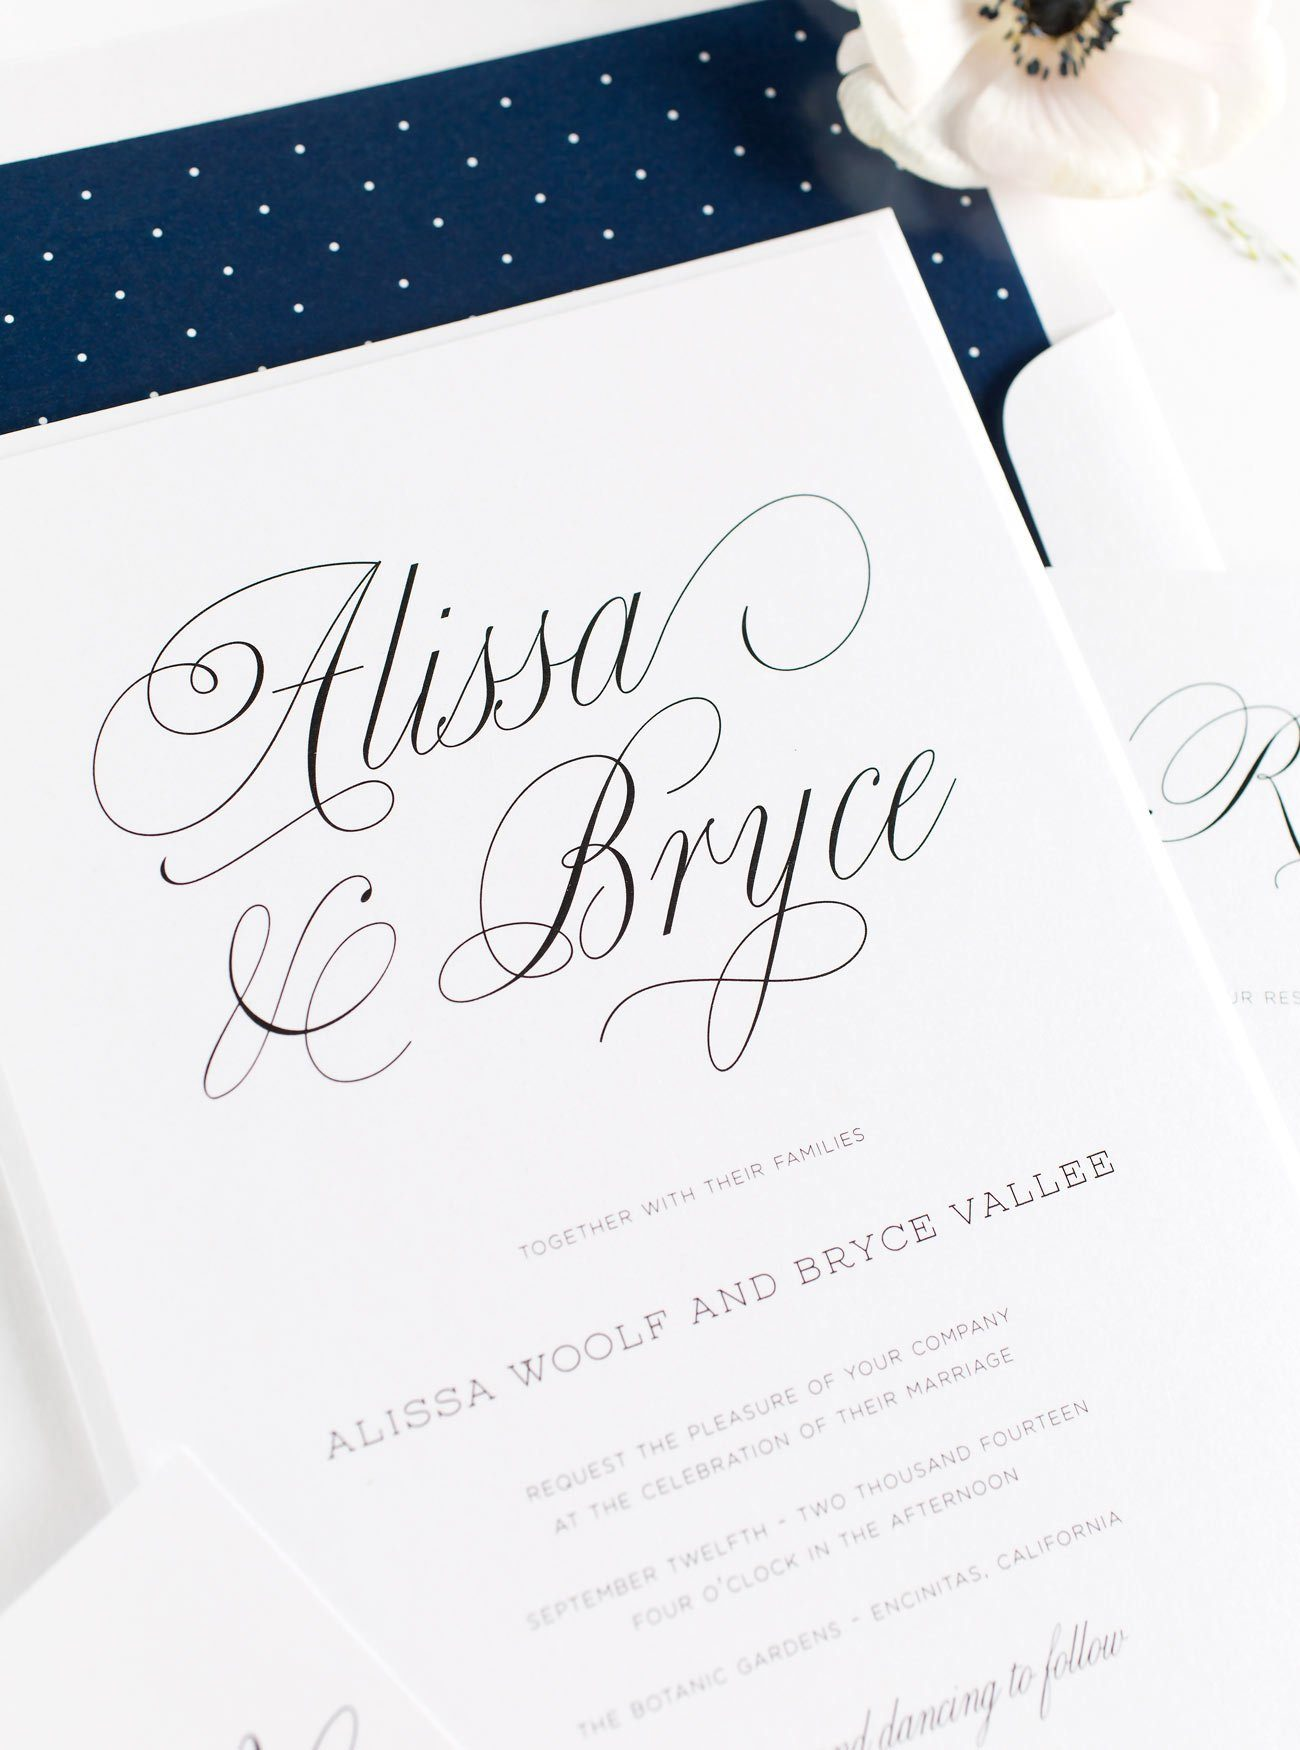 Romantic Wedding Invitations in Navy Blue